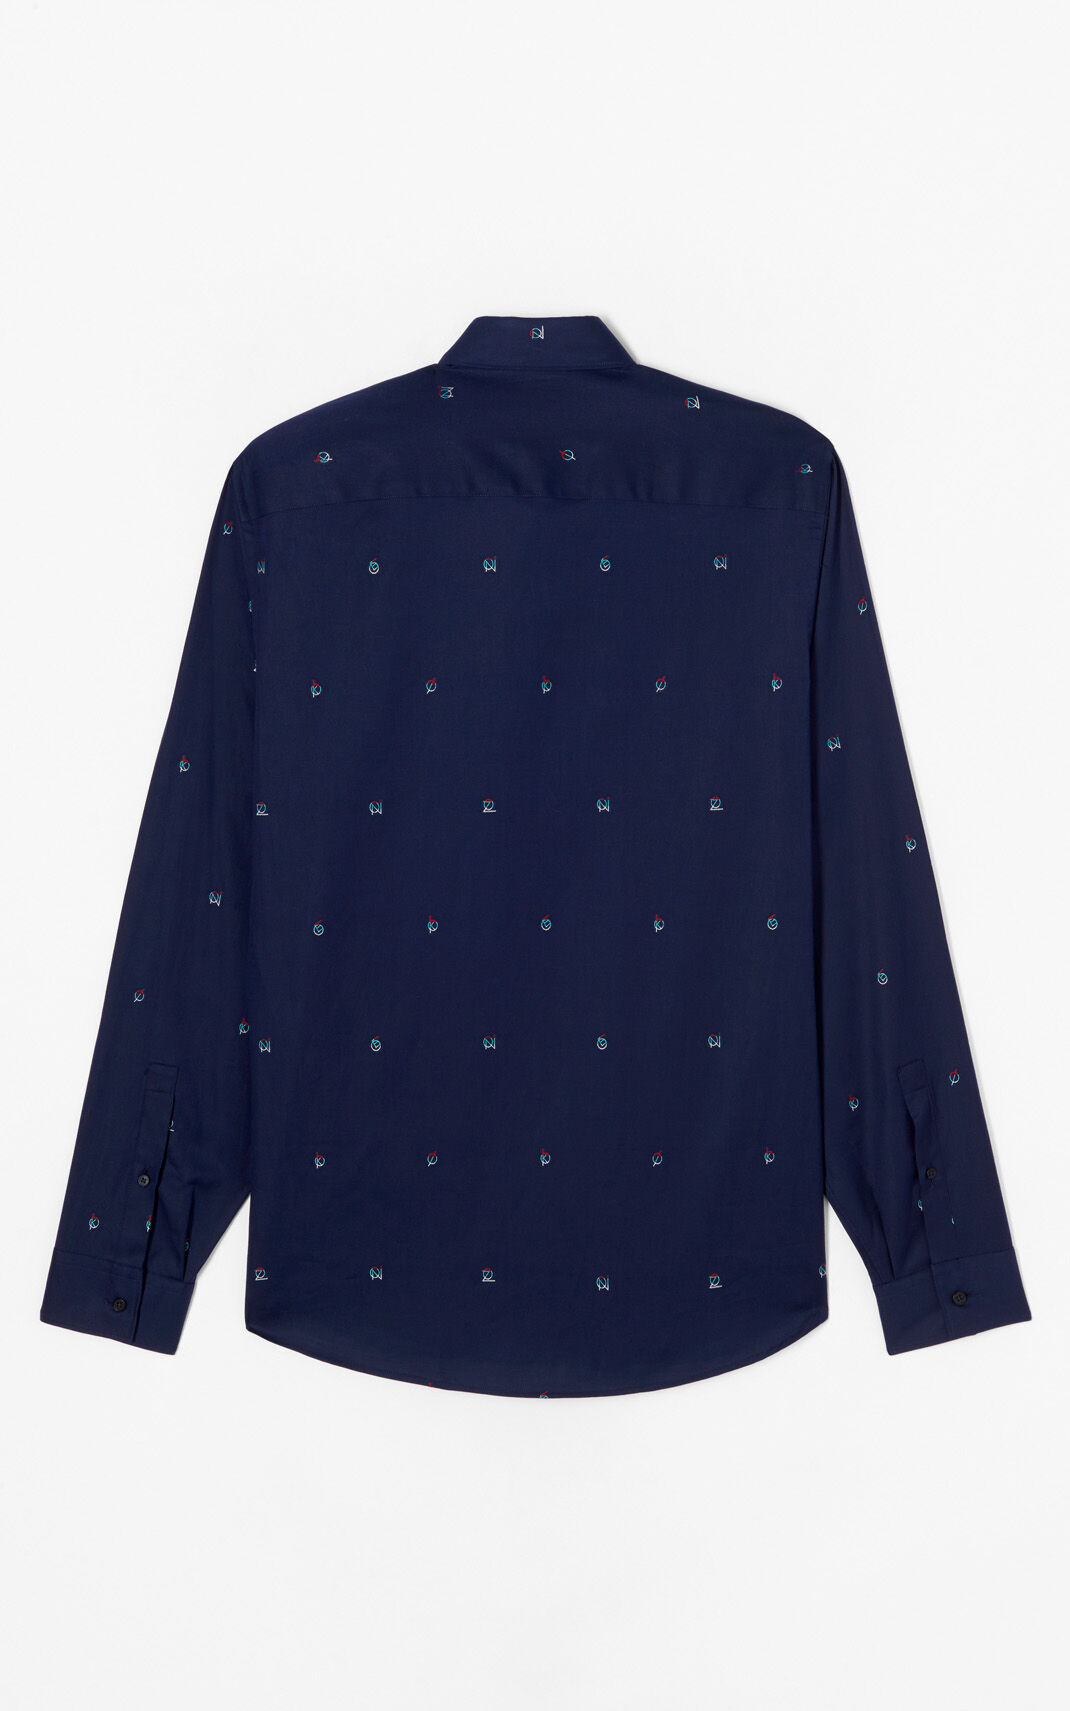 NAVY BLUE 'YMO' Printed shirt for men KENZO